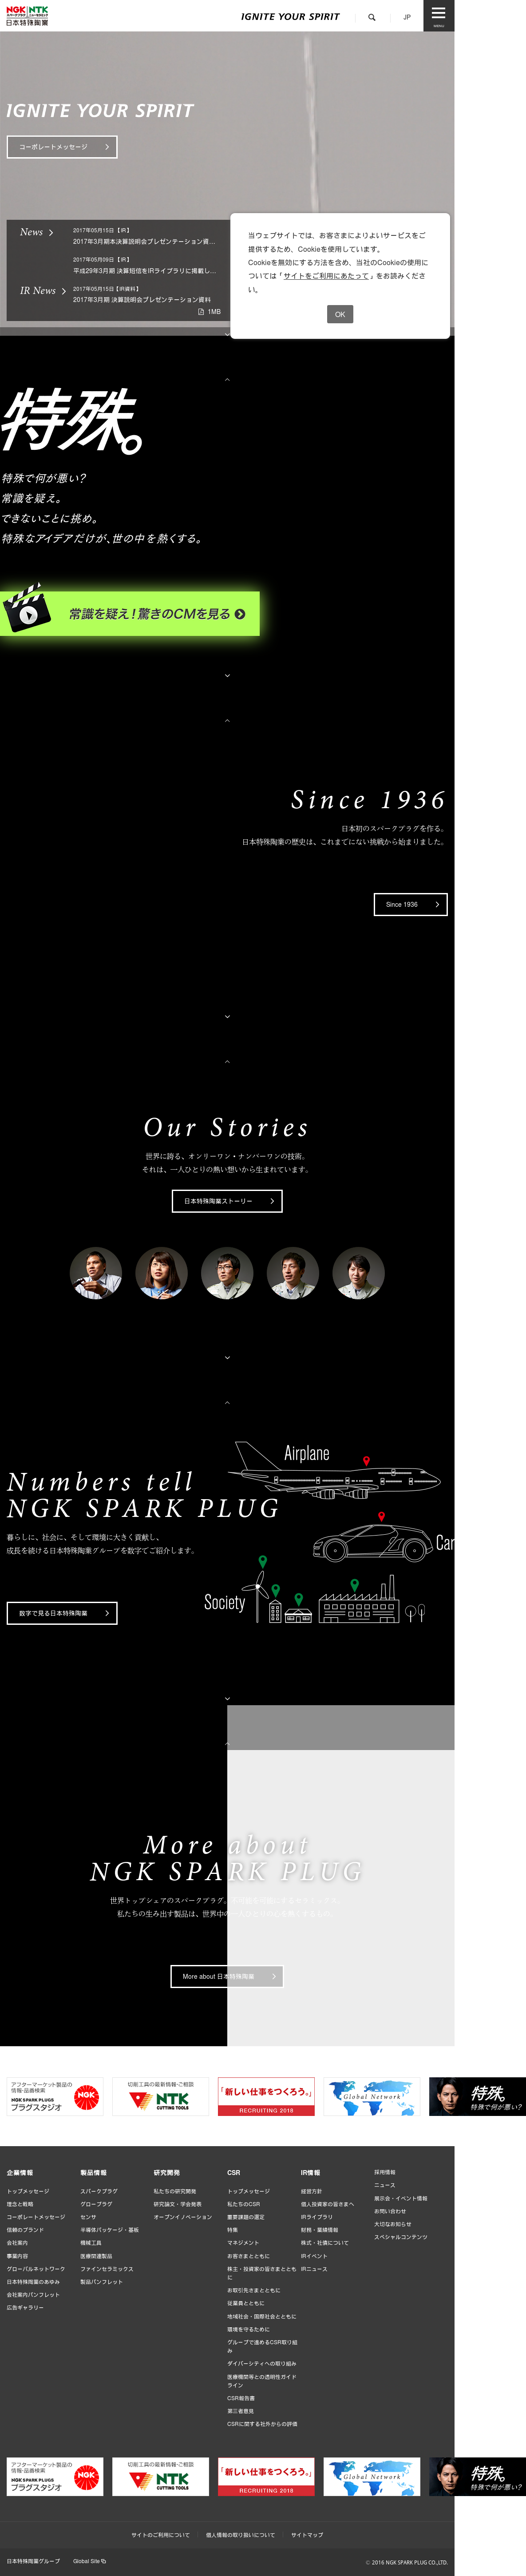 NGK Spark Plug Competitors, Revenue and Employees - Owler